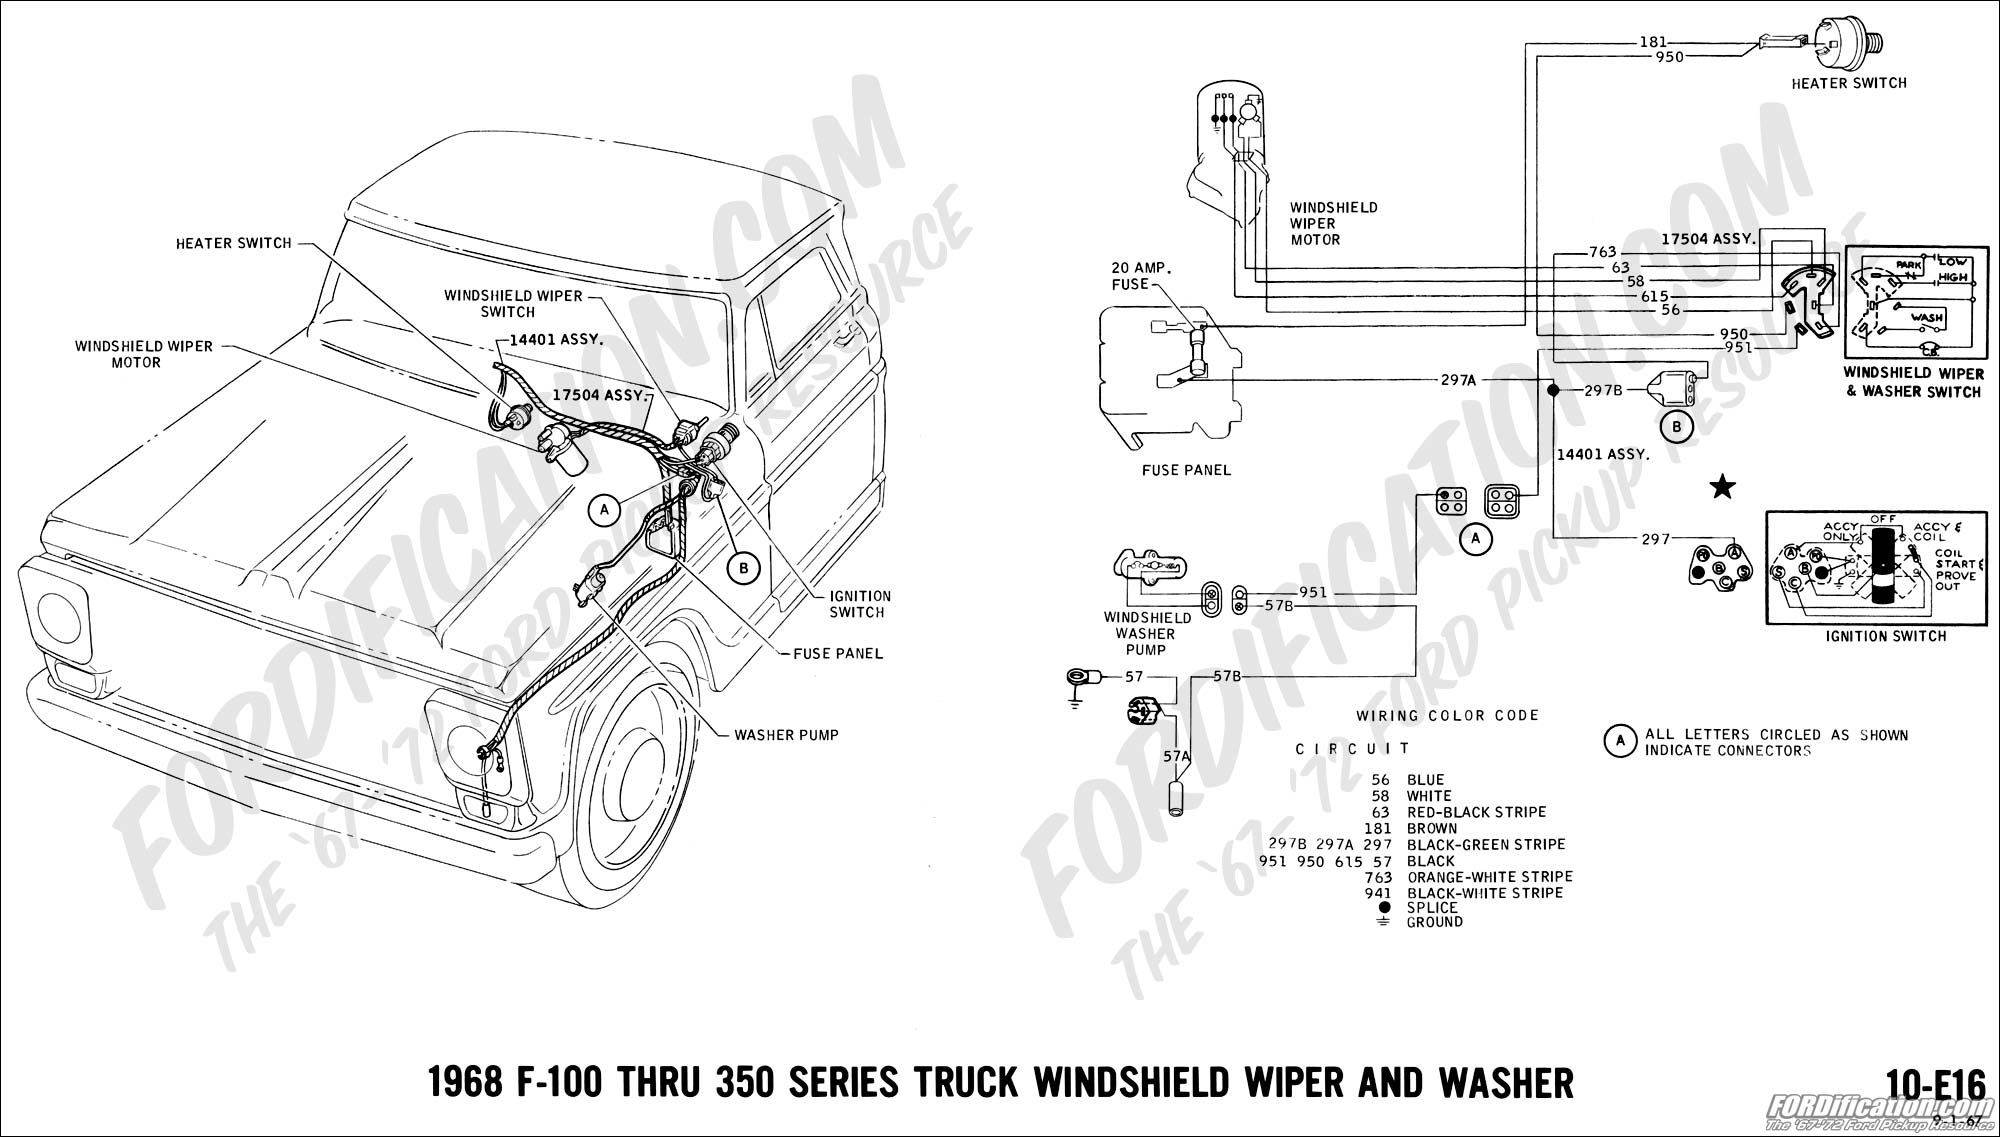 68 18 1968 impala fuse box diagram wiring diagram simonand ba falcon fuse box layout at n-0.co